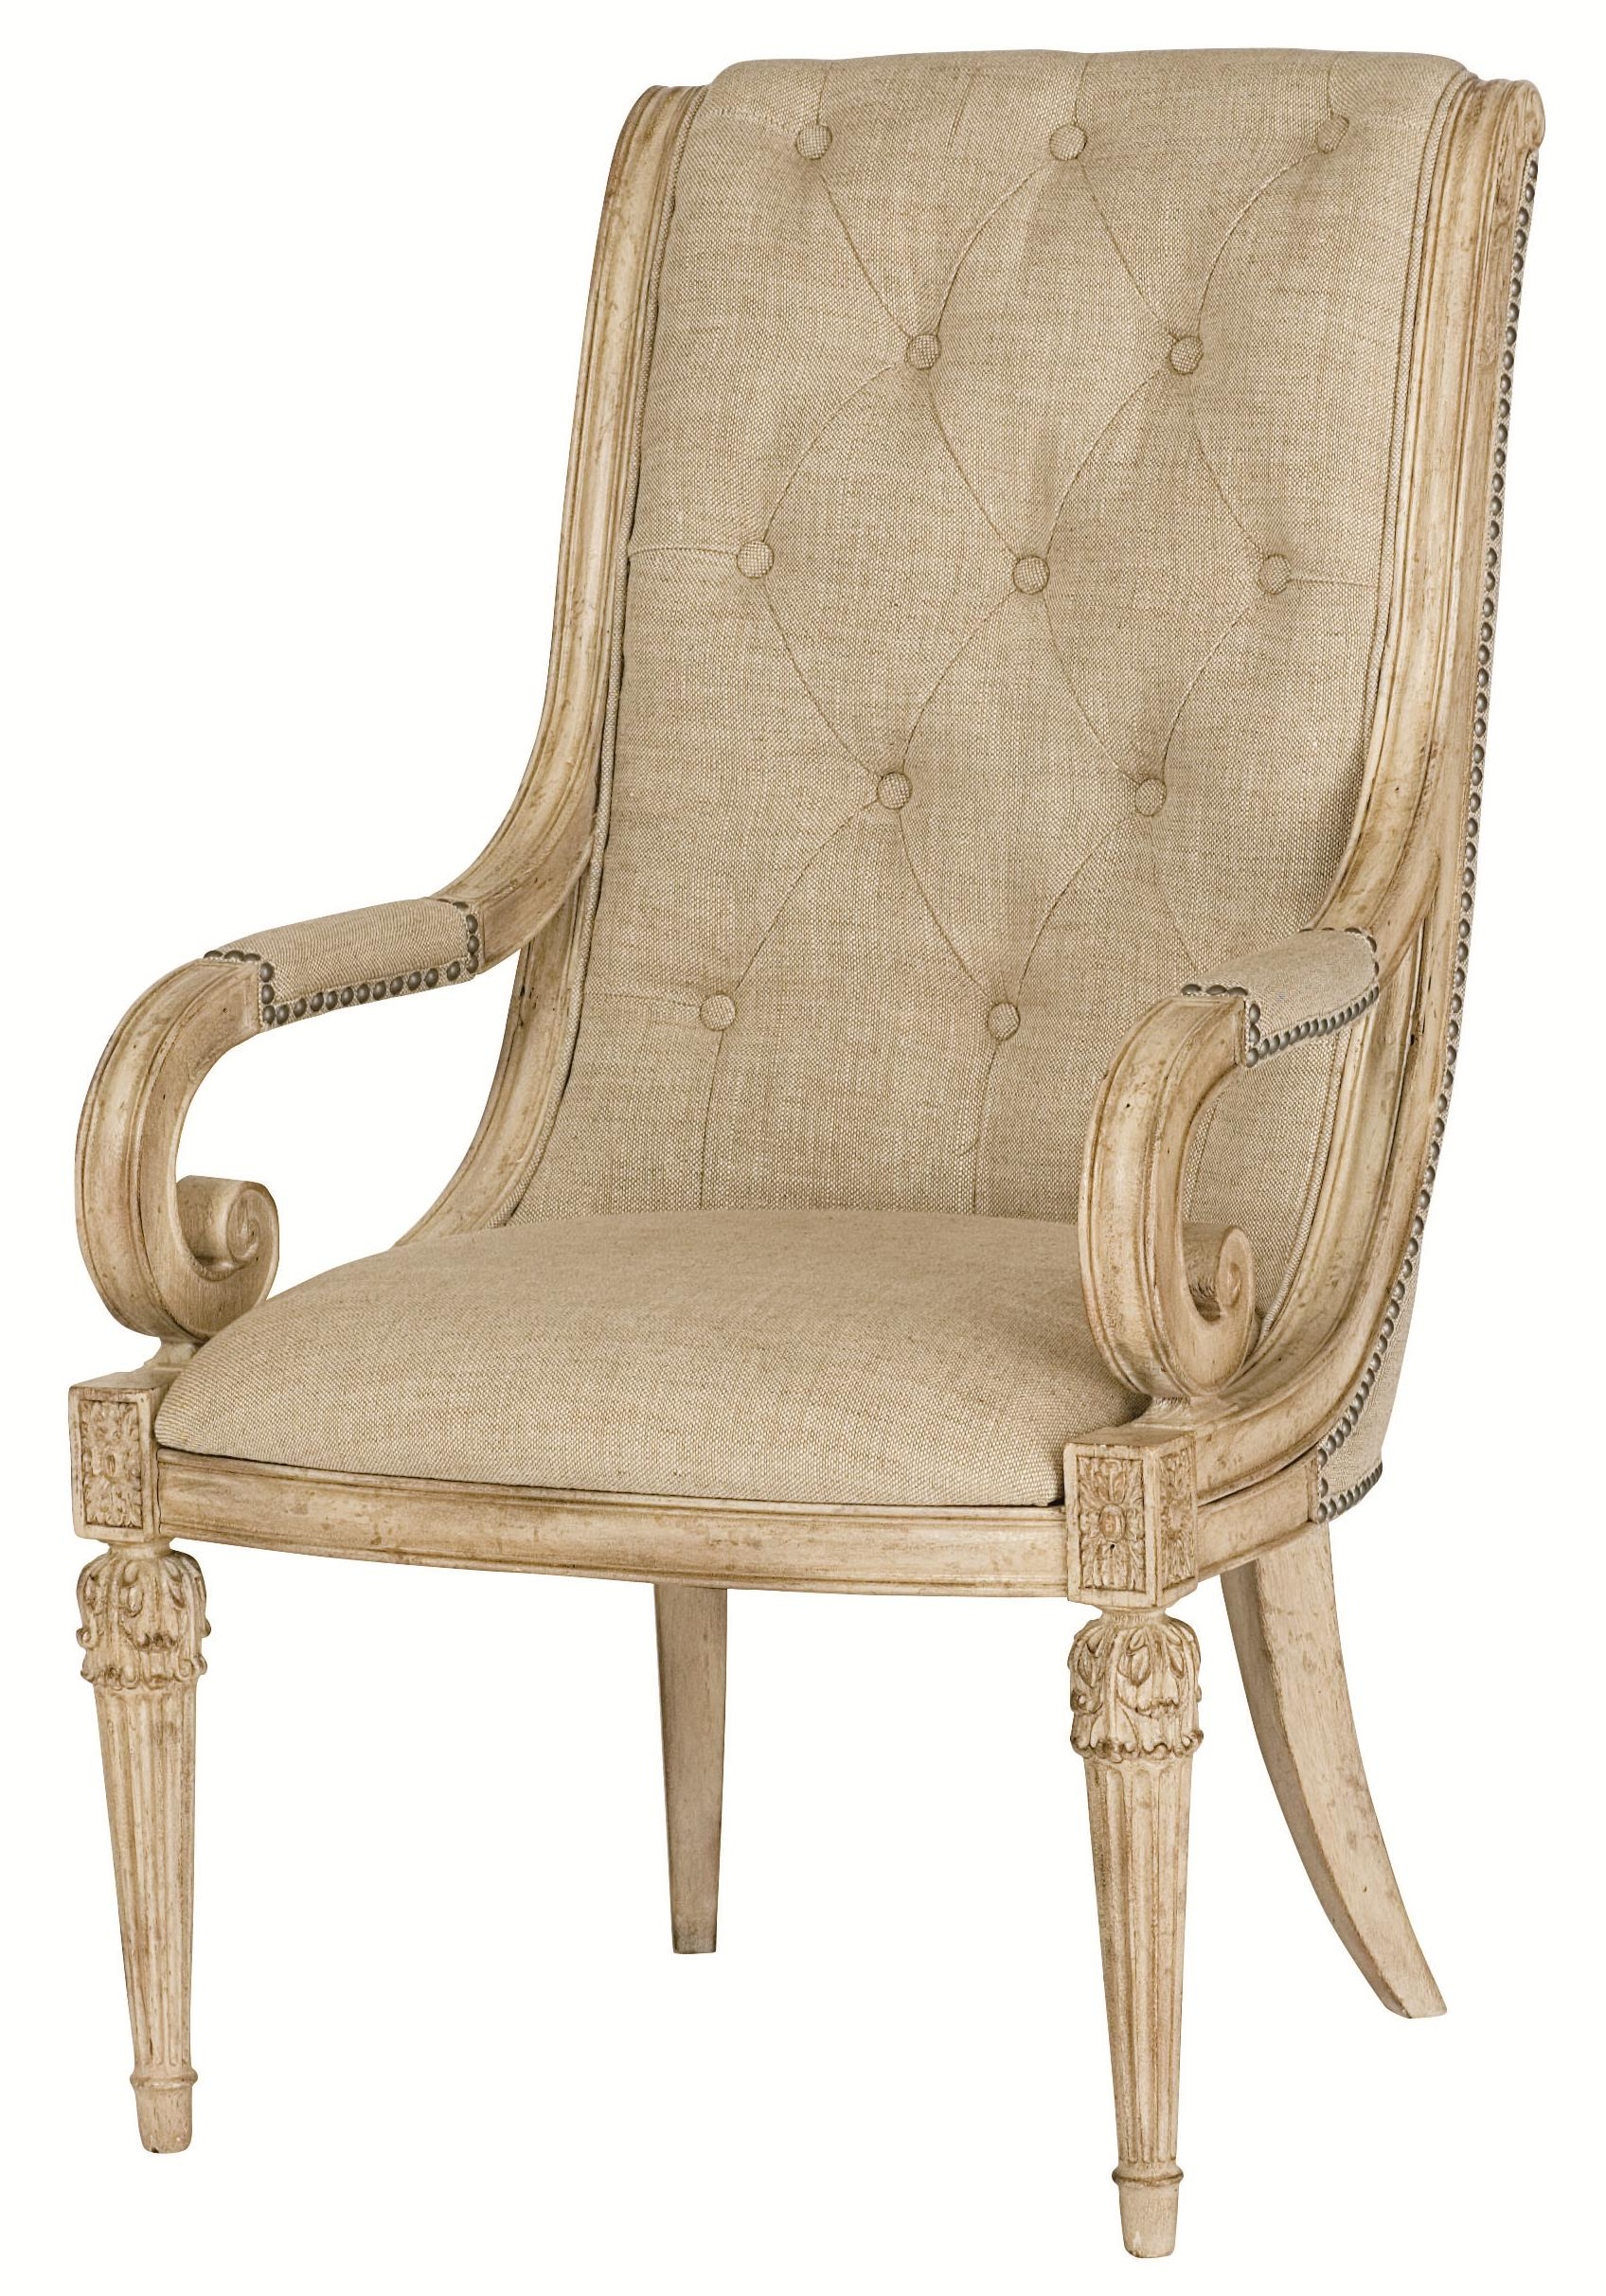 American Drew Jessica McClintock Home - The Boutique Collection Upholstered Arm Chair - Item Number: 217-637W